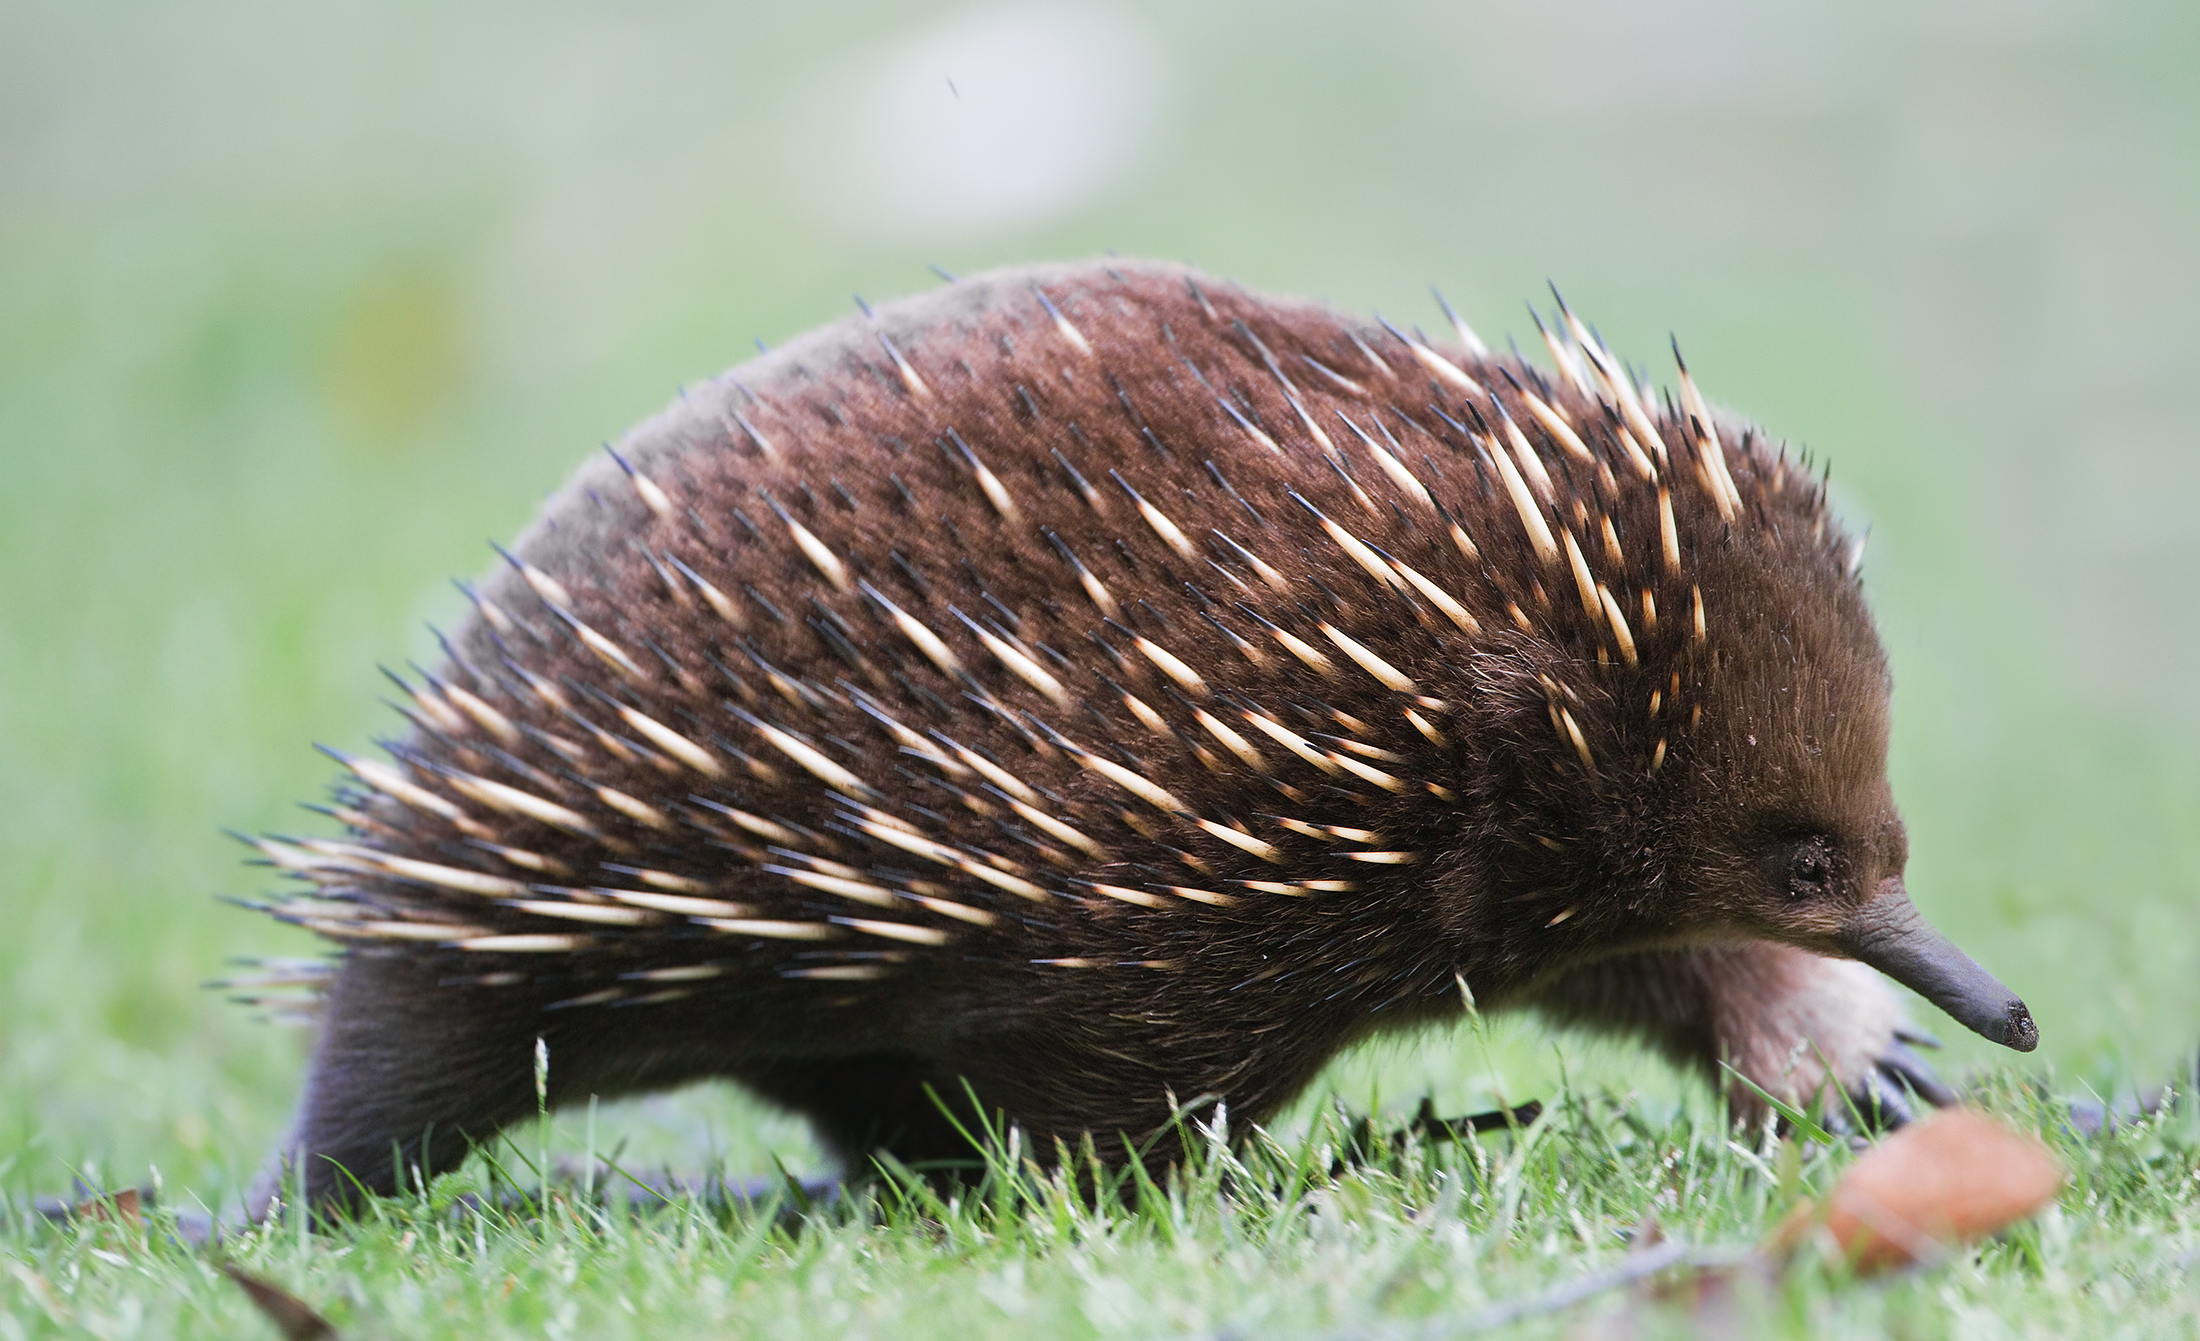 [Image: Tachyglossus_aculeatus_side_on.jpg]